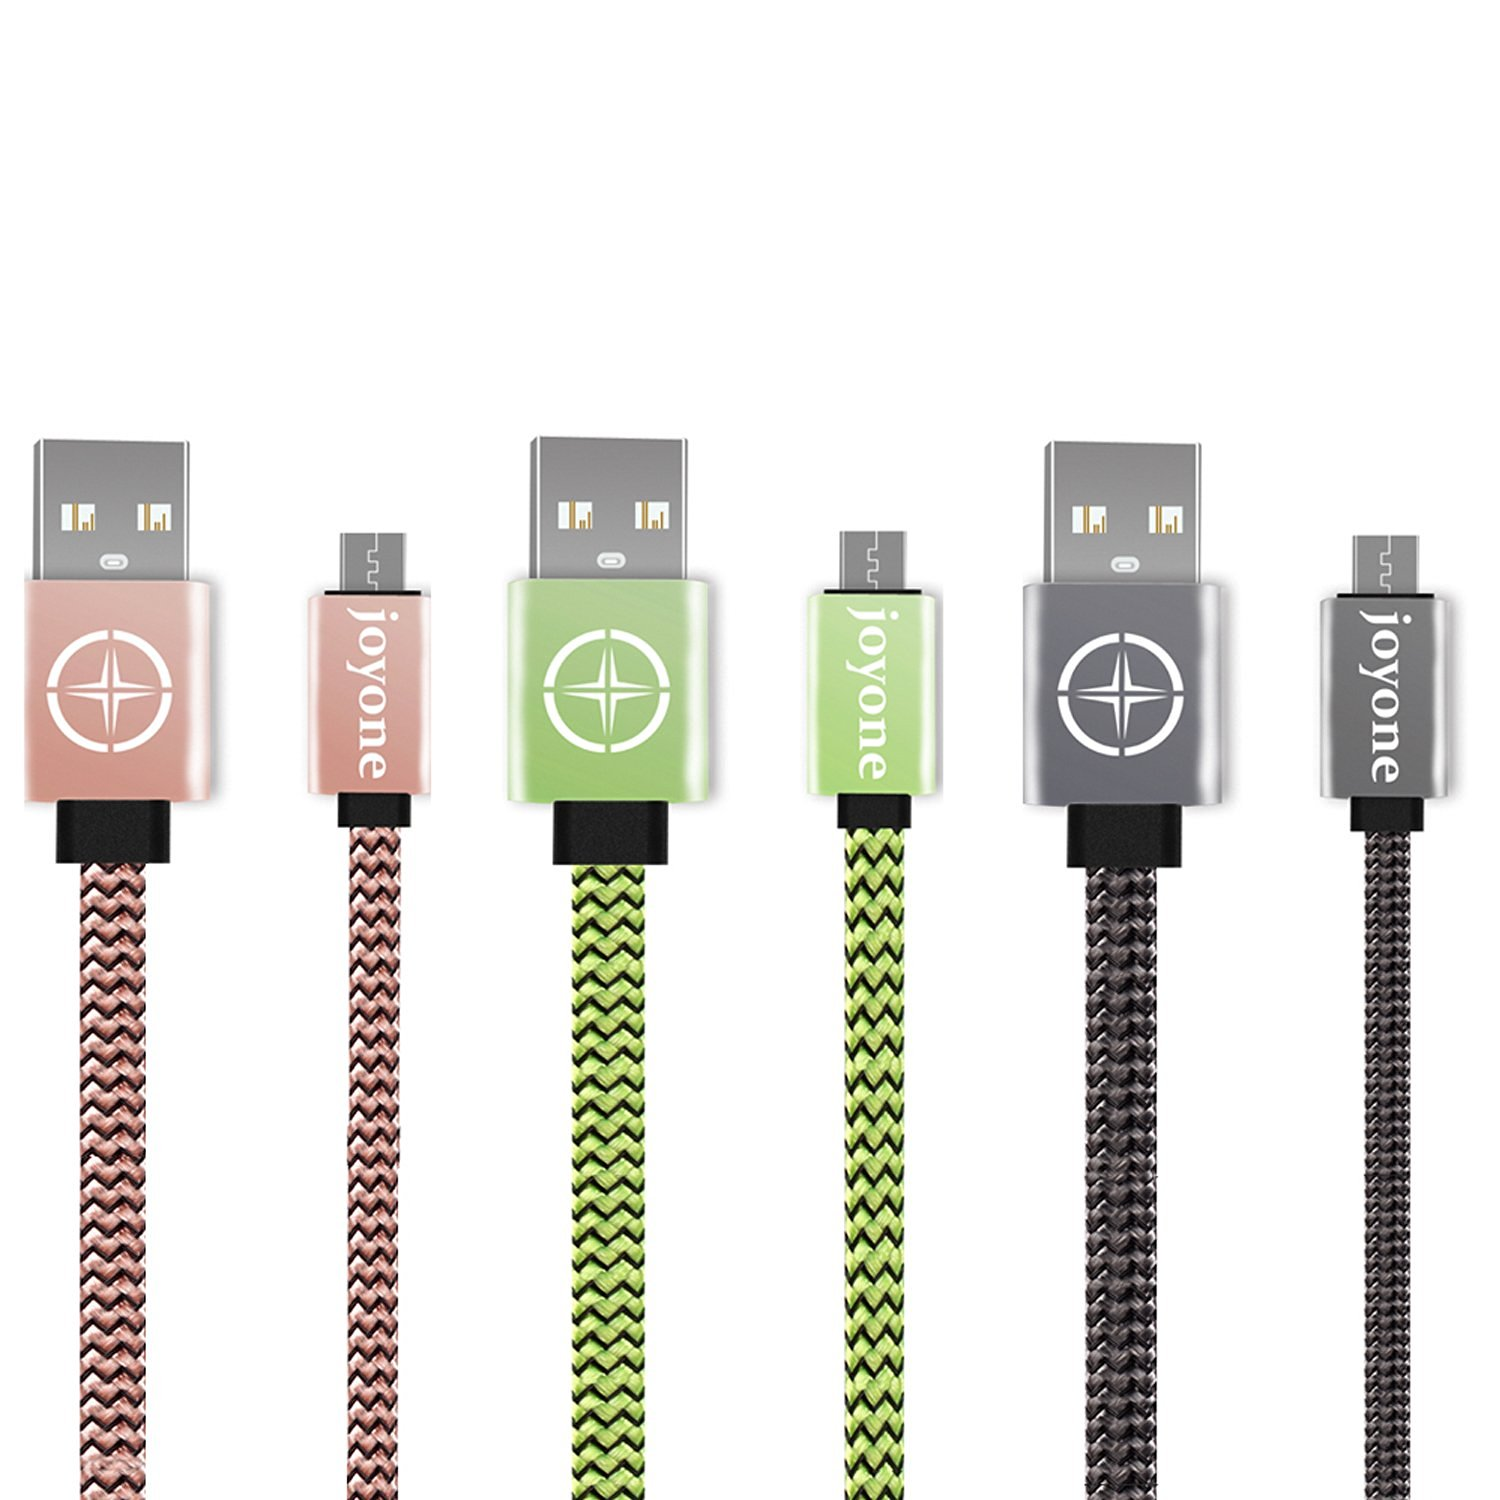 Micro USB Cable, JOYONE 3-Pack 3.3ft/1m High Speed Flat Nylon Braided Charging/Sync Data Durable USB Cable for Android, Samsung, Nokia, HTC and More, 3 Colors (Pink, Gray, Green)